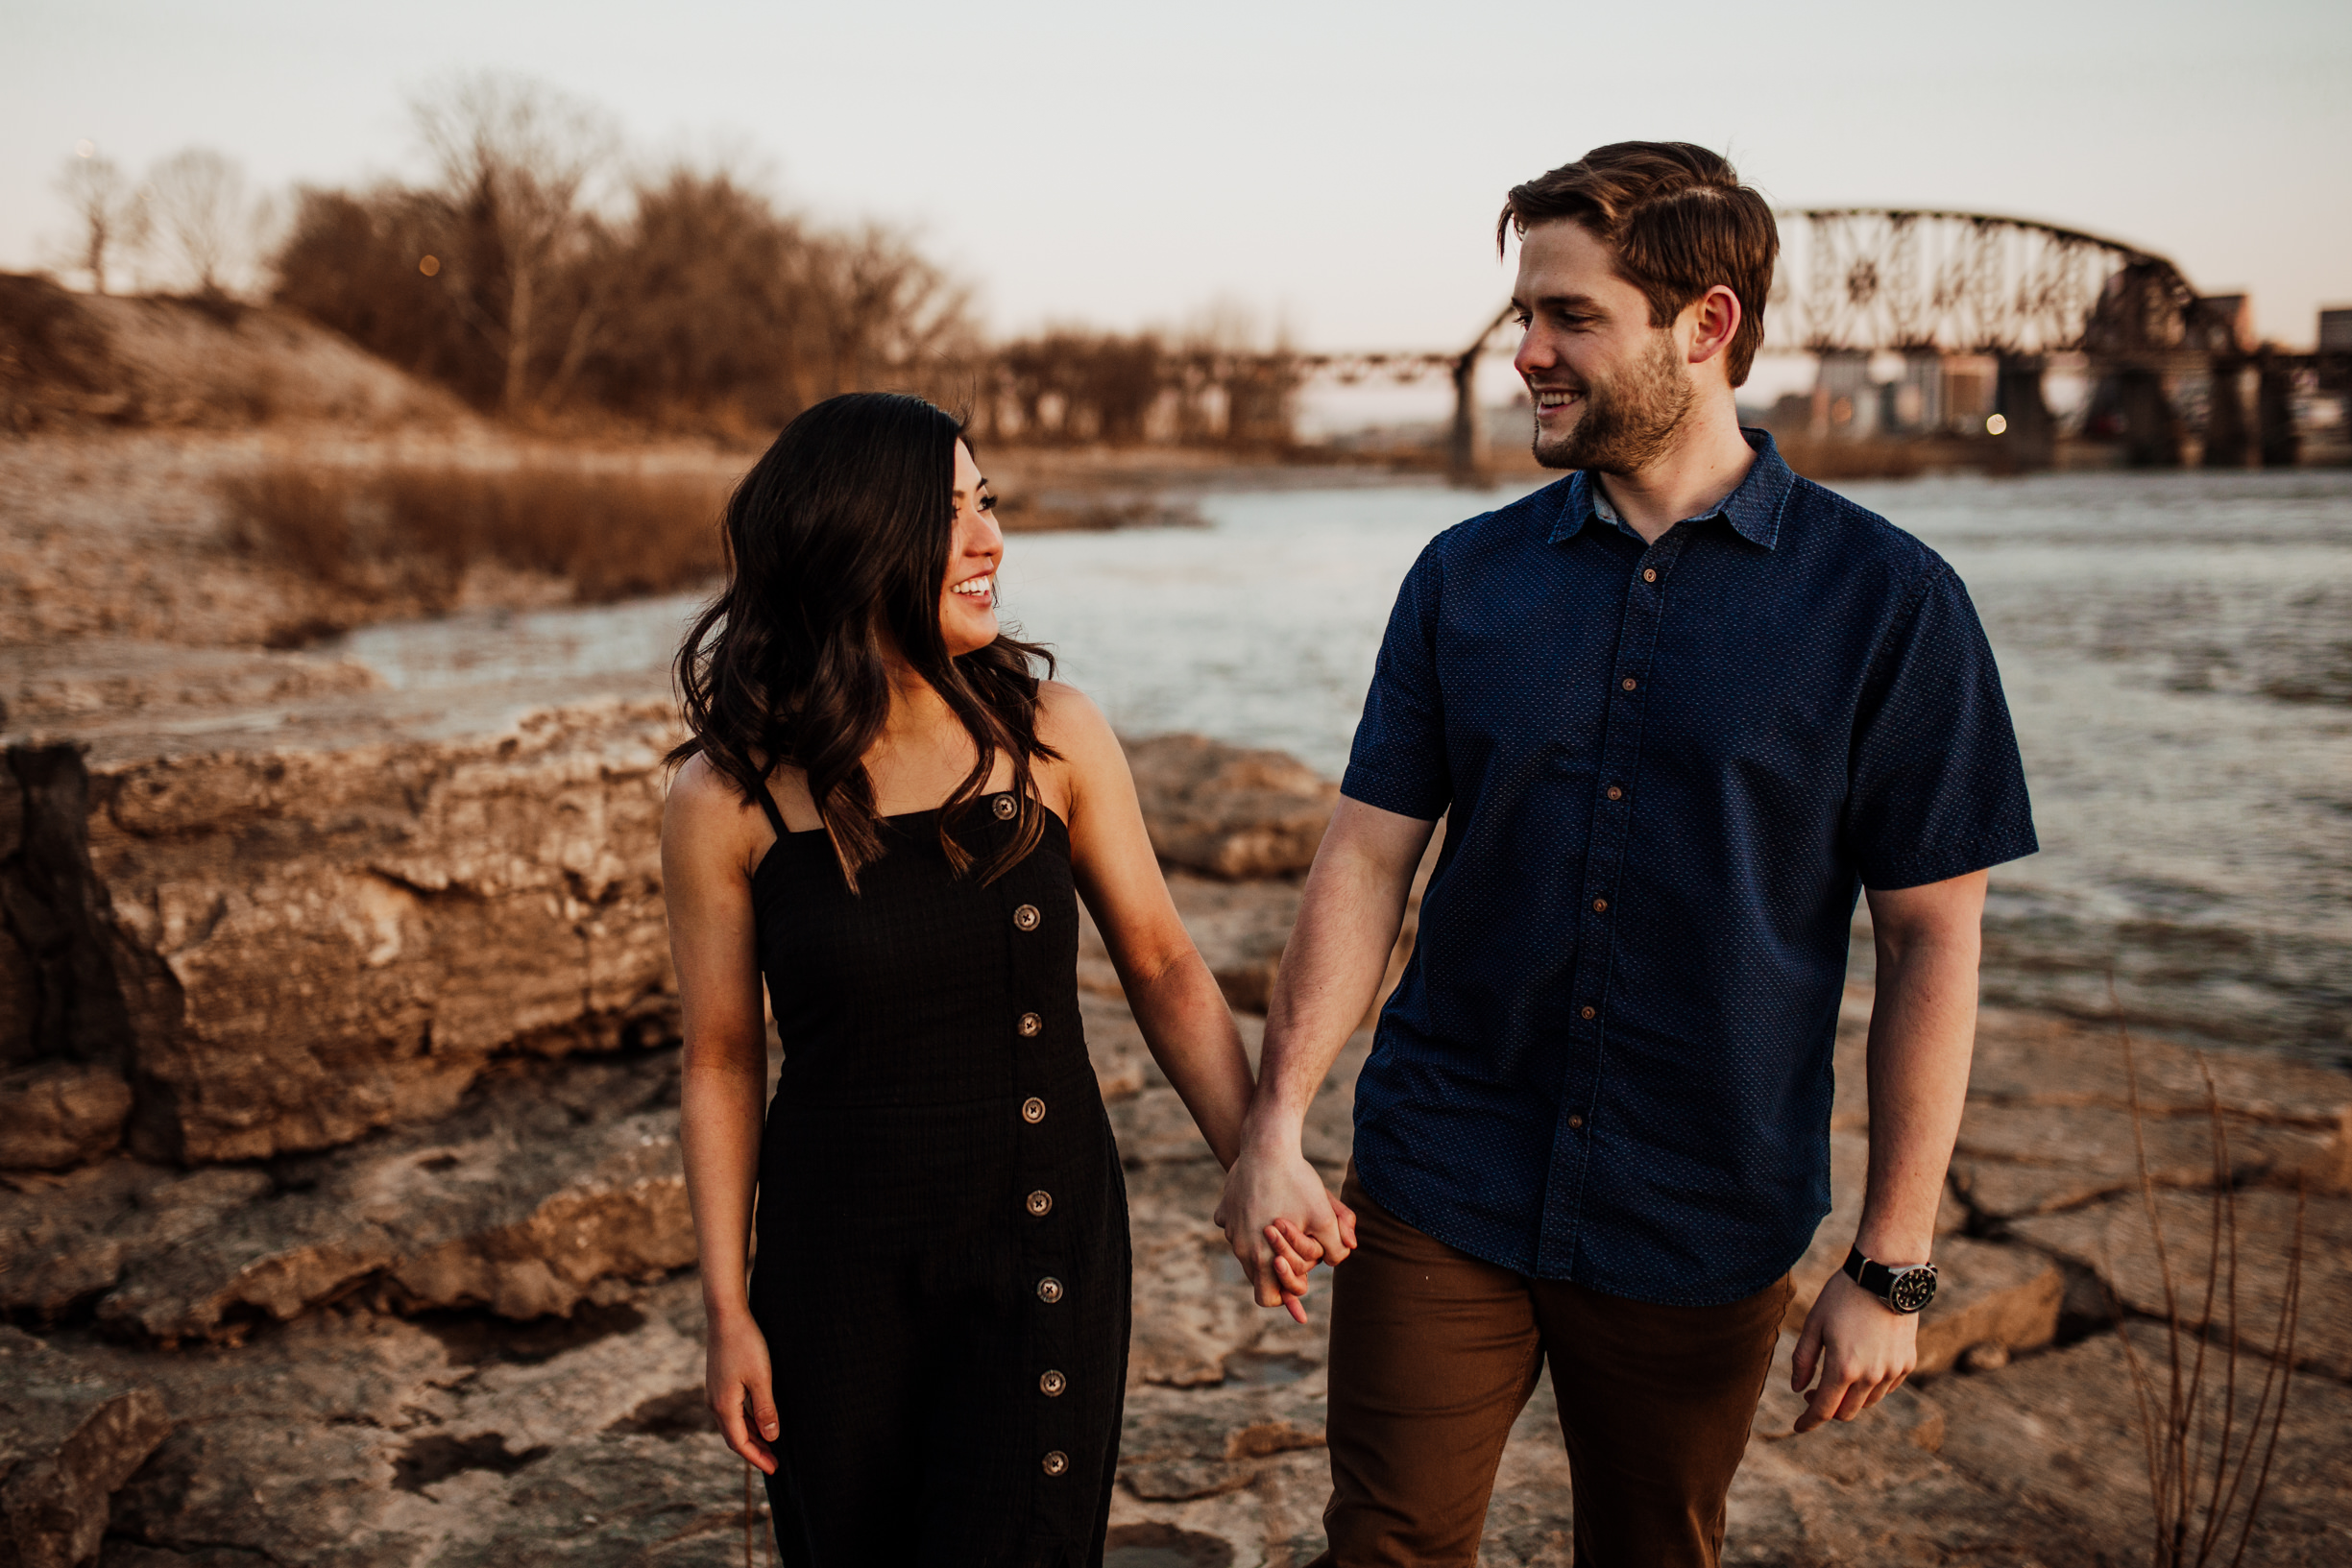 louisville-engagement-photographer-crystal-ludwick-photo-tammy-and-caleb-engagement-photography (25 of 32).jpg